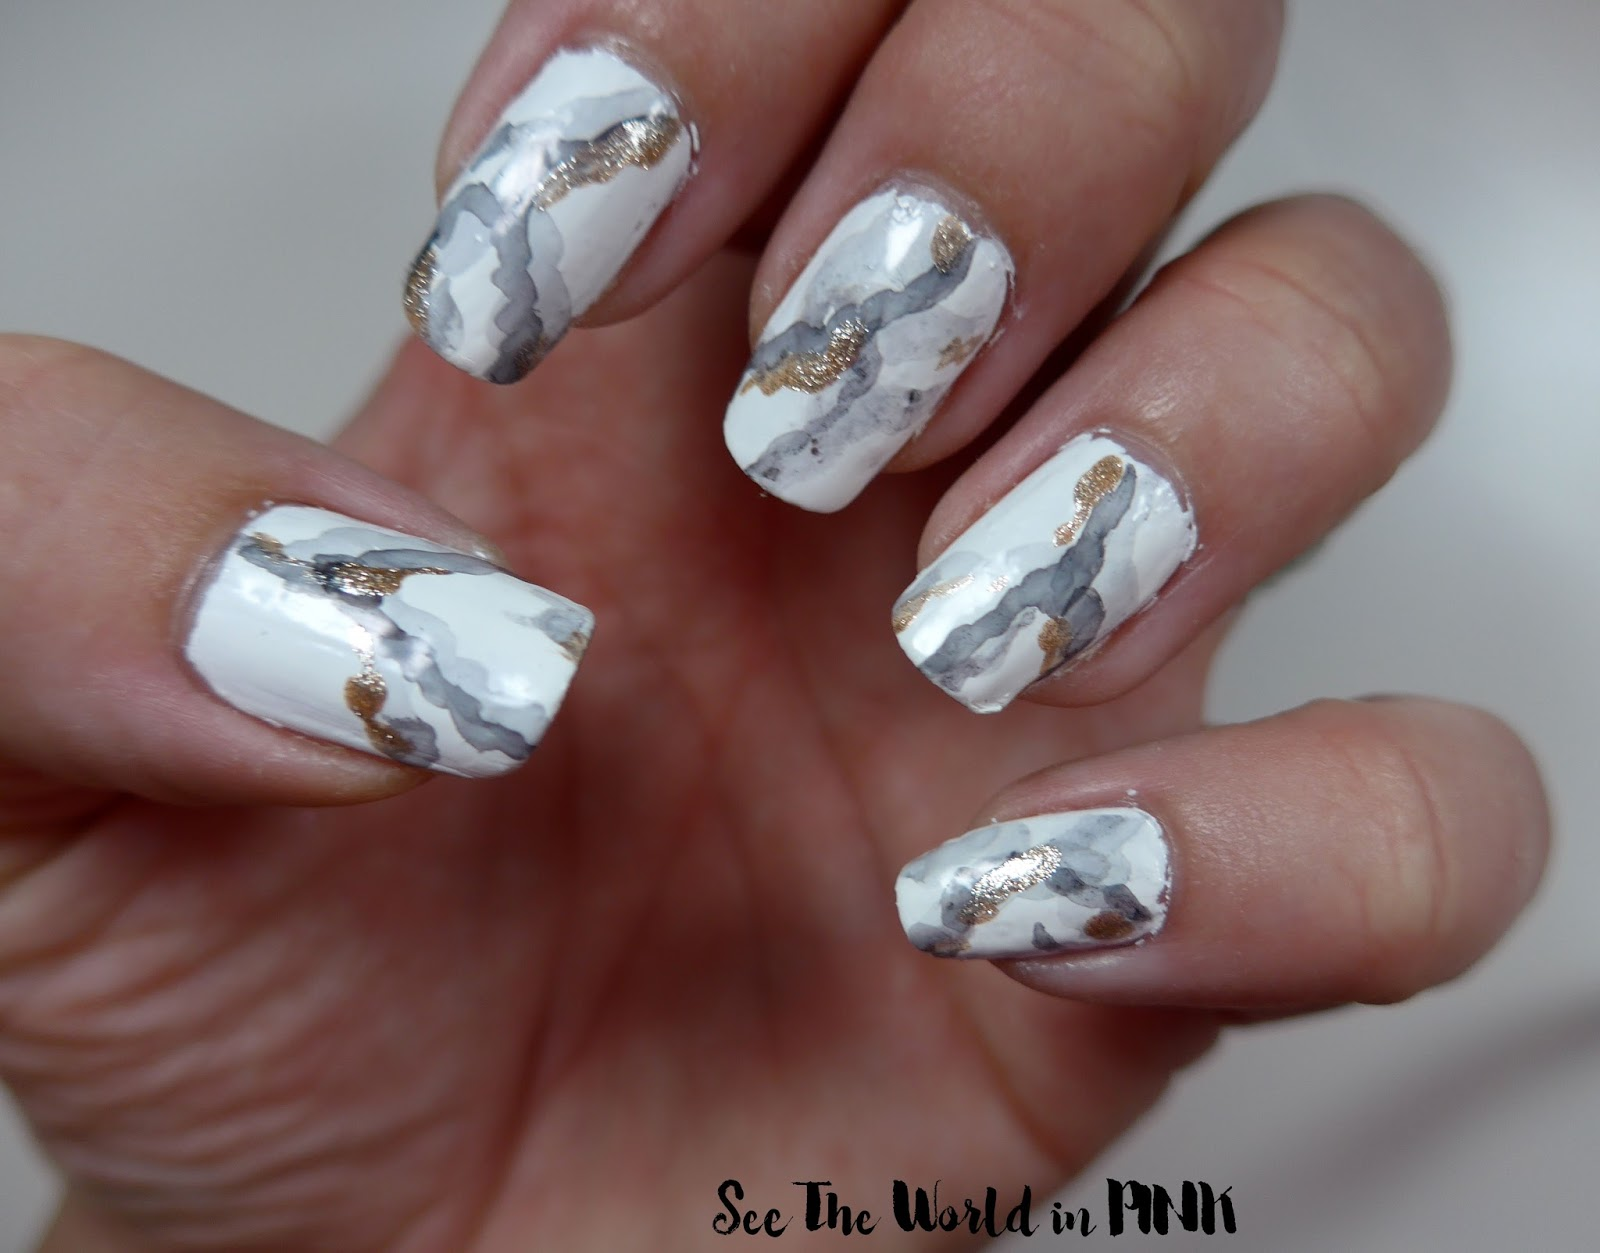 Manicure Tuesday - Stone Marble Nail Art! | See the World in PINK